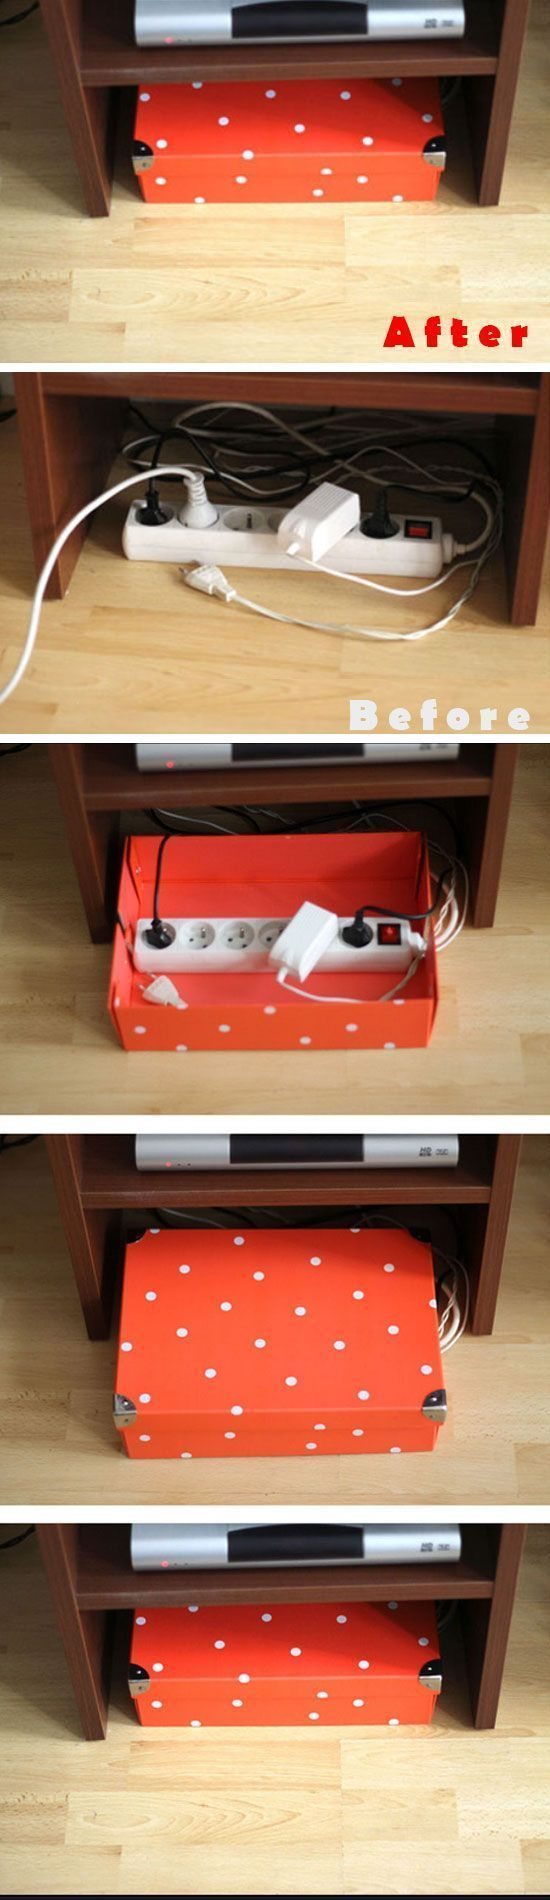 Disguise Cables In Reward Field | 25 Life Hacks Each Lady Ought To Know | Simple Organizati…